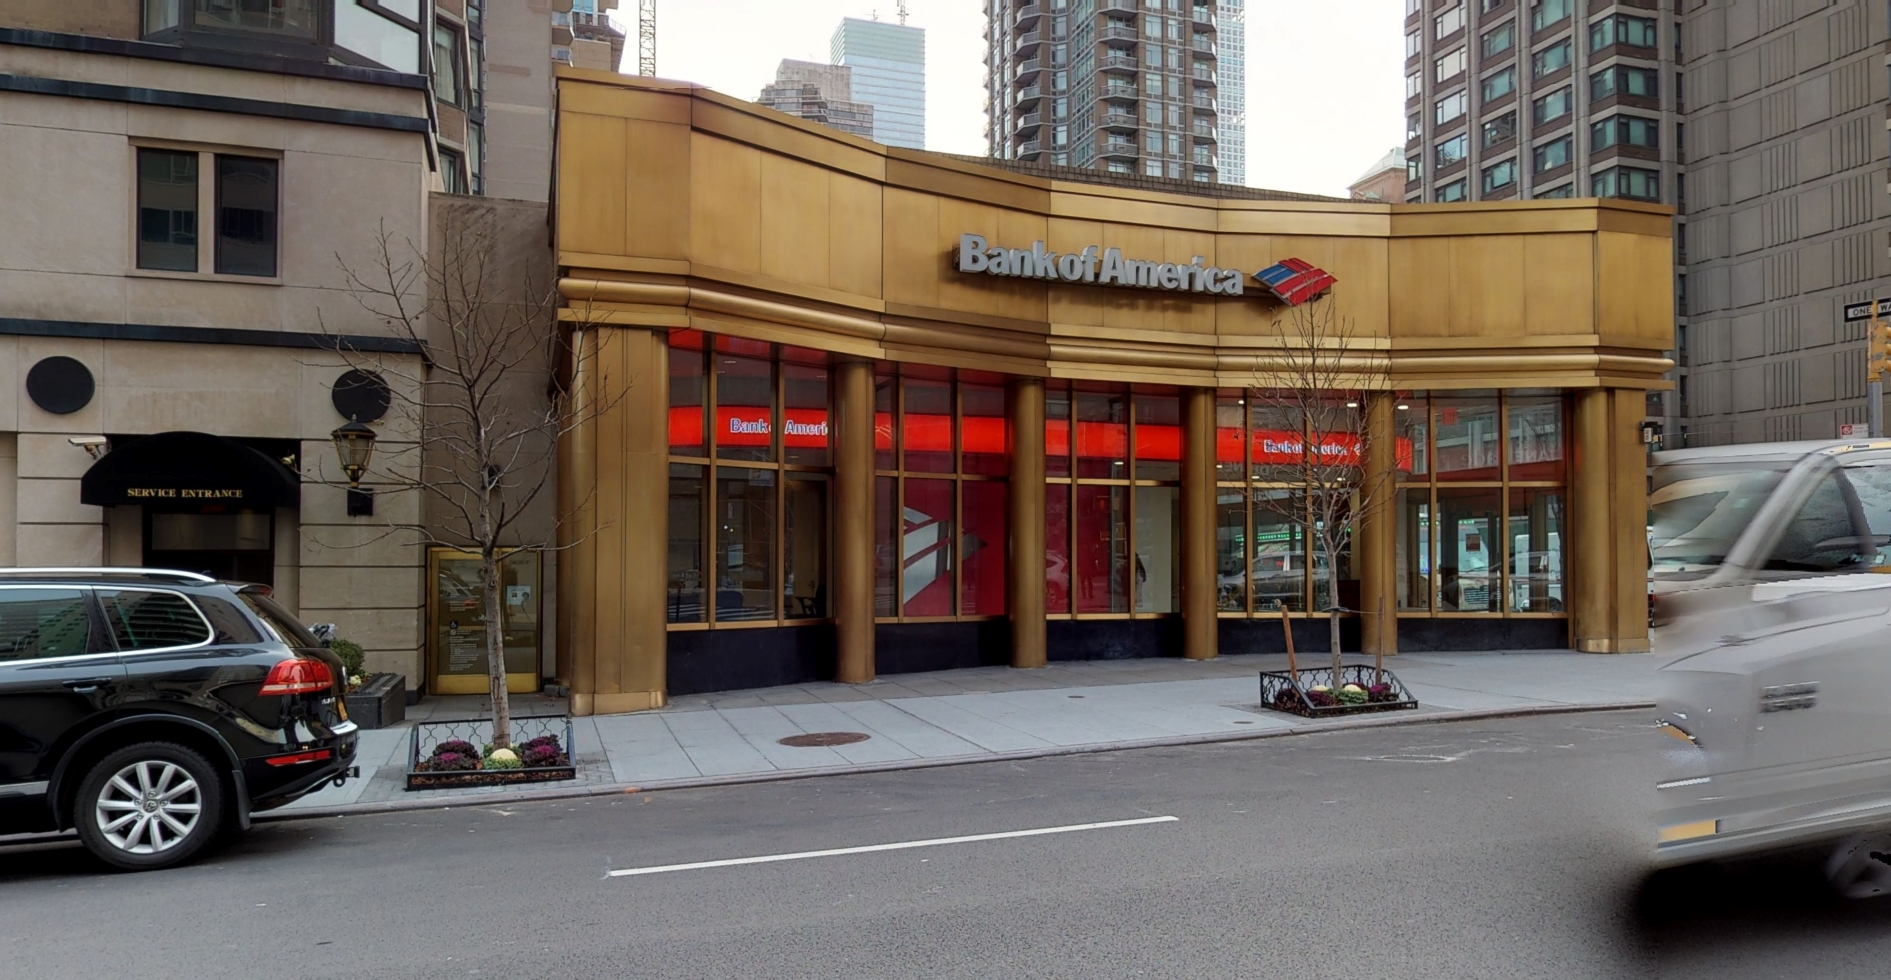 Bank of America financial center with walk-up ATM | 1107 3rd Ave, New York, NY 10065